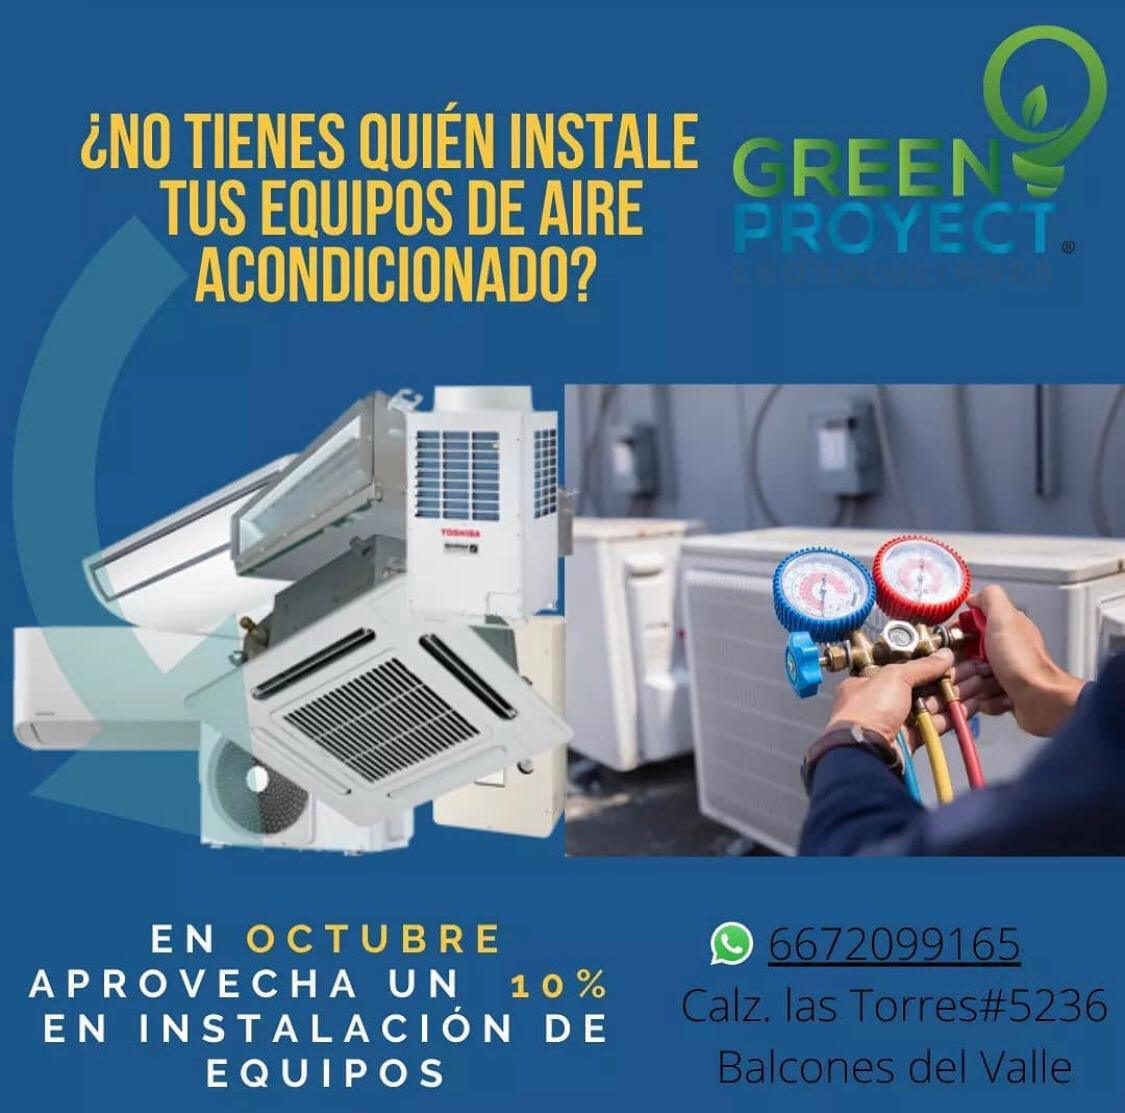 Green Proyect - Ecosoluciones.